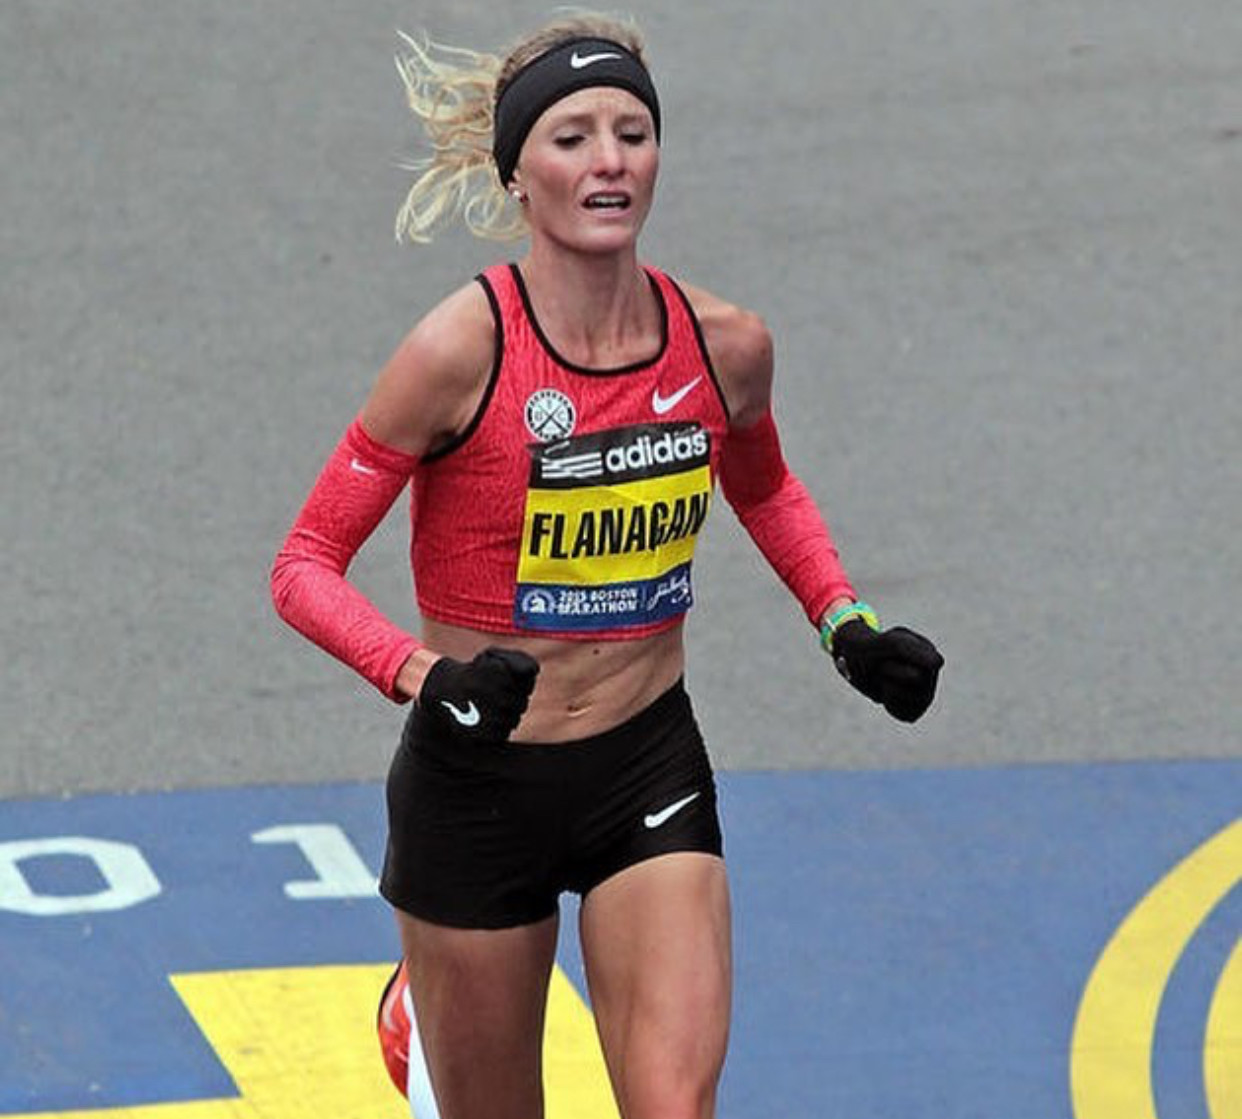 Shalane Flanagan message today is very clear - I have unfinished Business